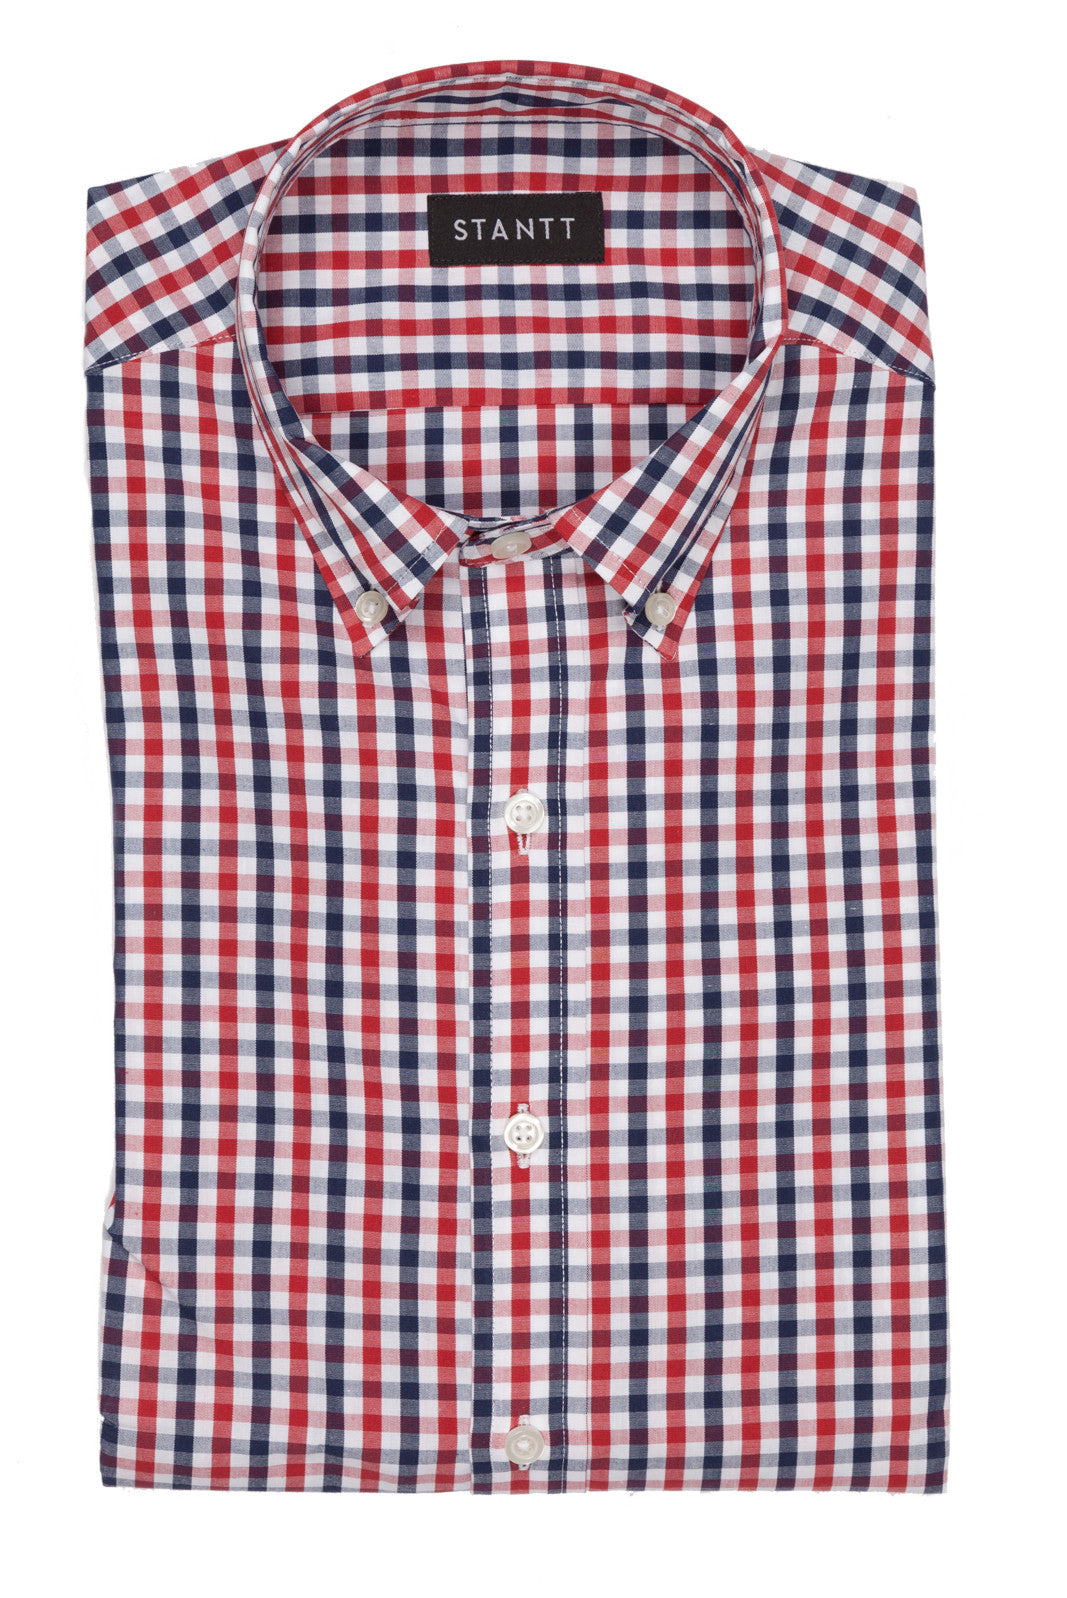 Cardinal Red and Navy Gingham: Modified-Spread Collar, Barrel Cuff